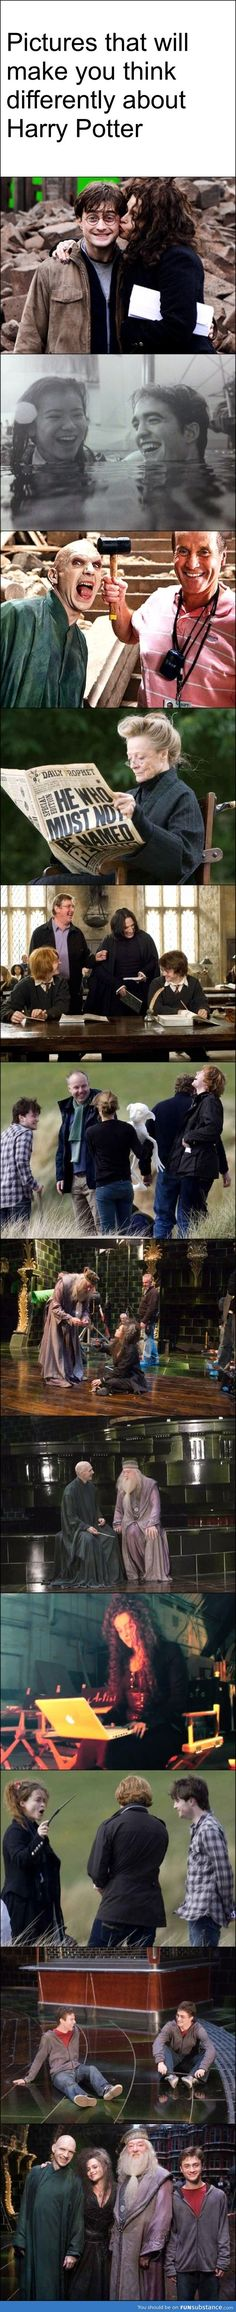 Harry potter world .. pictures that make you think differently about Harry Potter     http://myvideoland.com